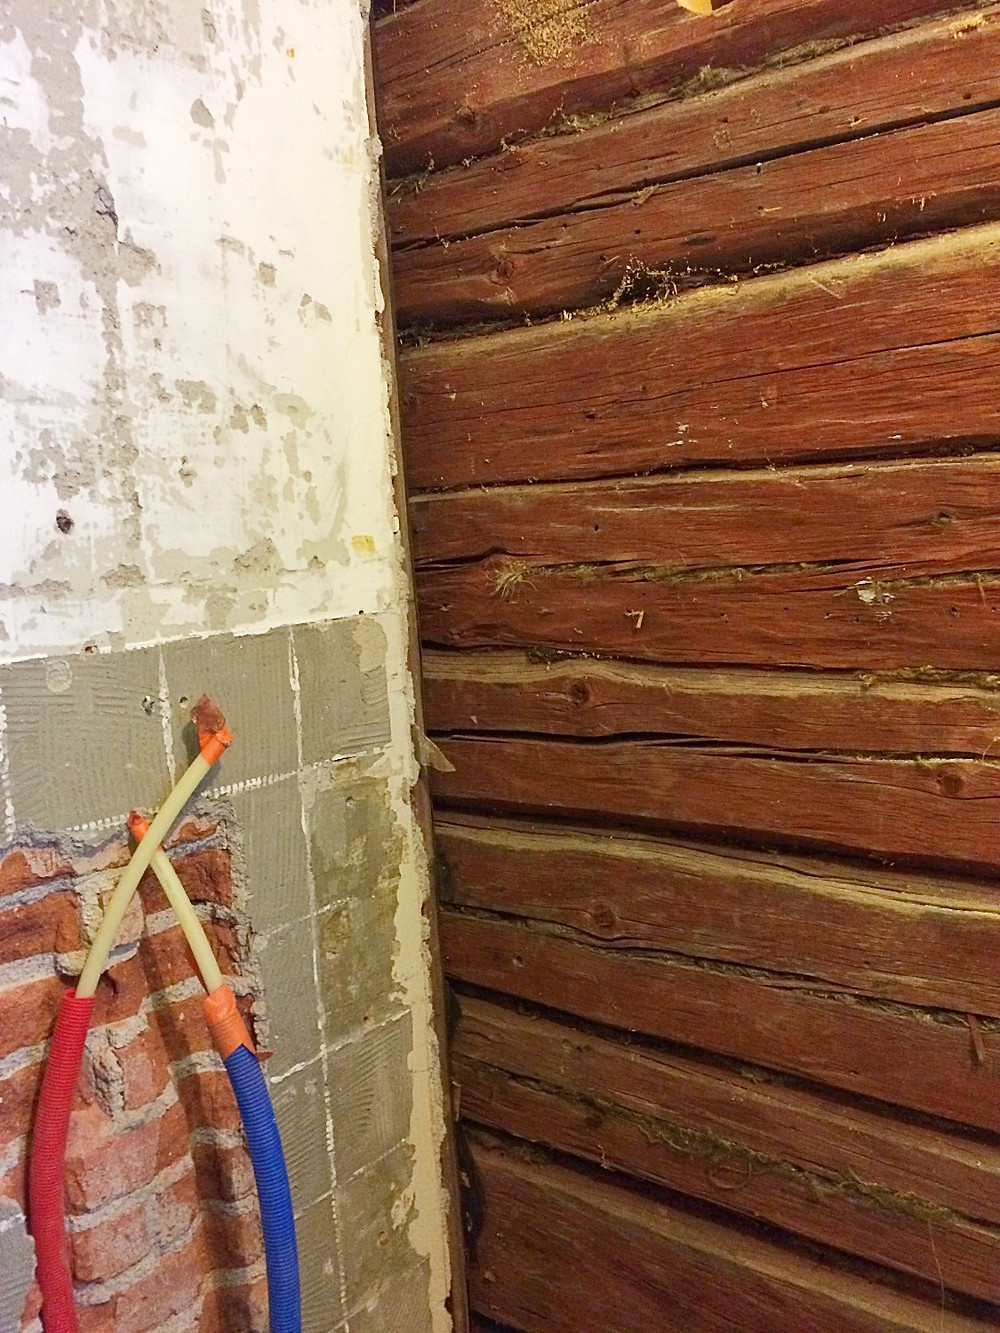 The old timber wall in the bathroom is visible